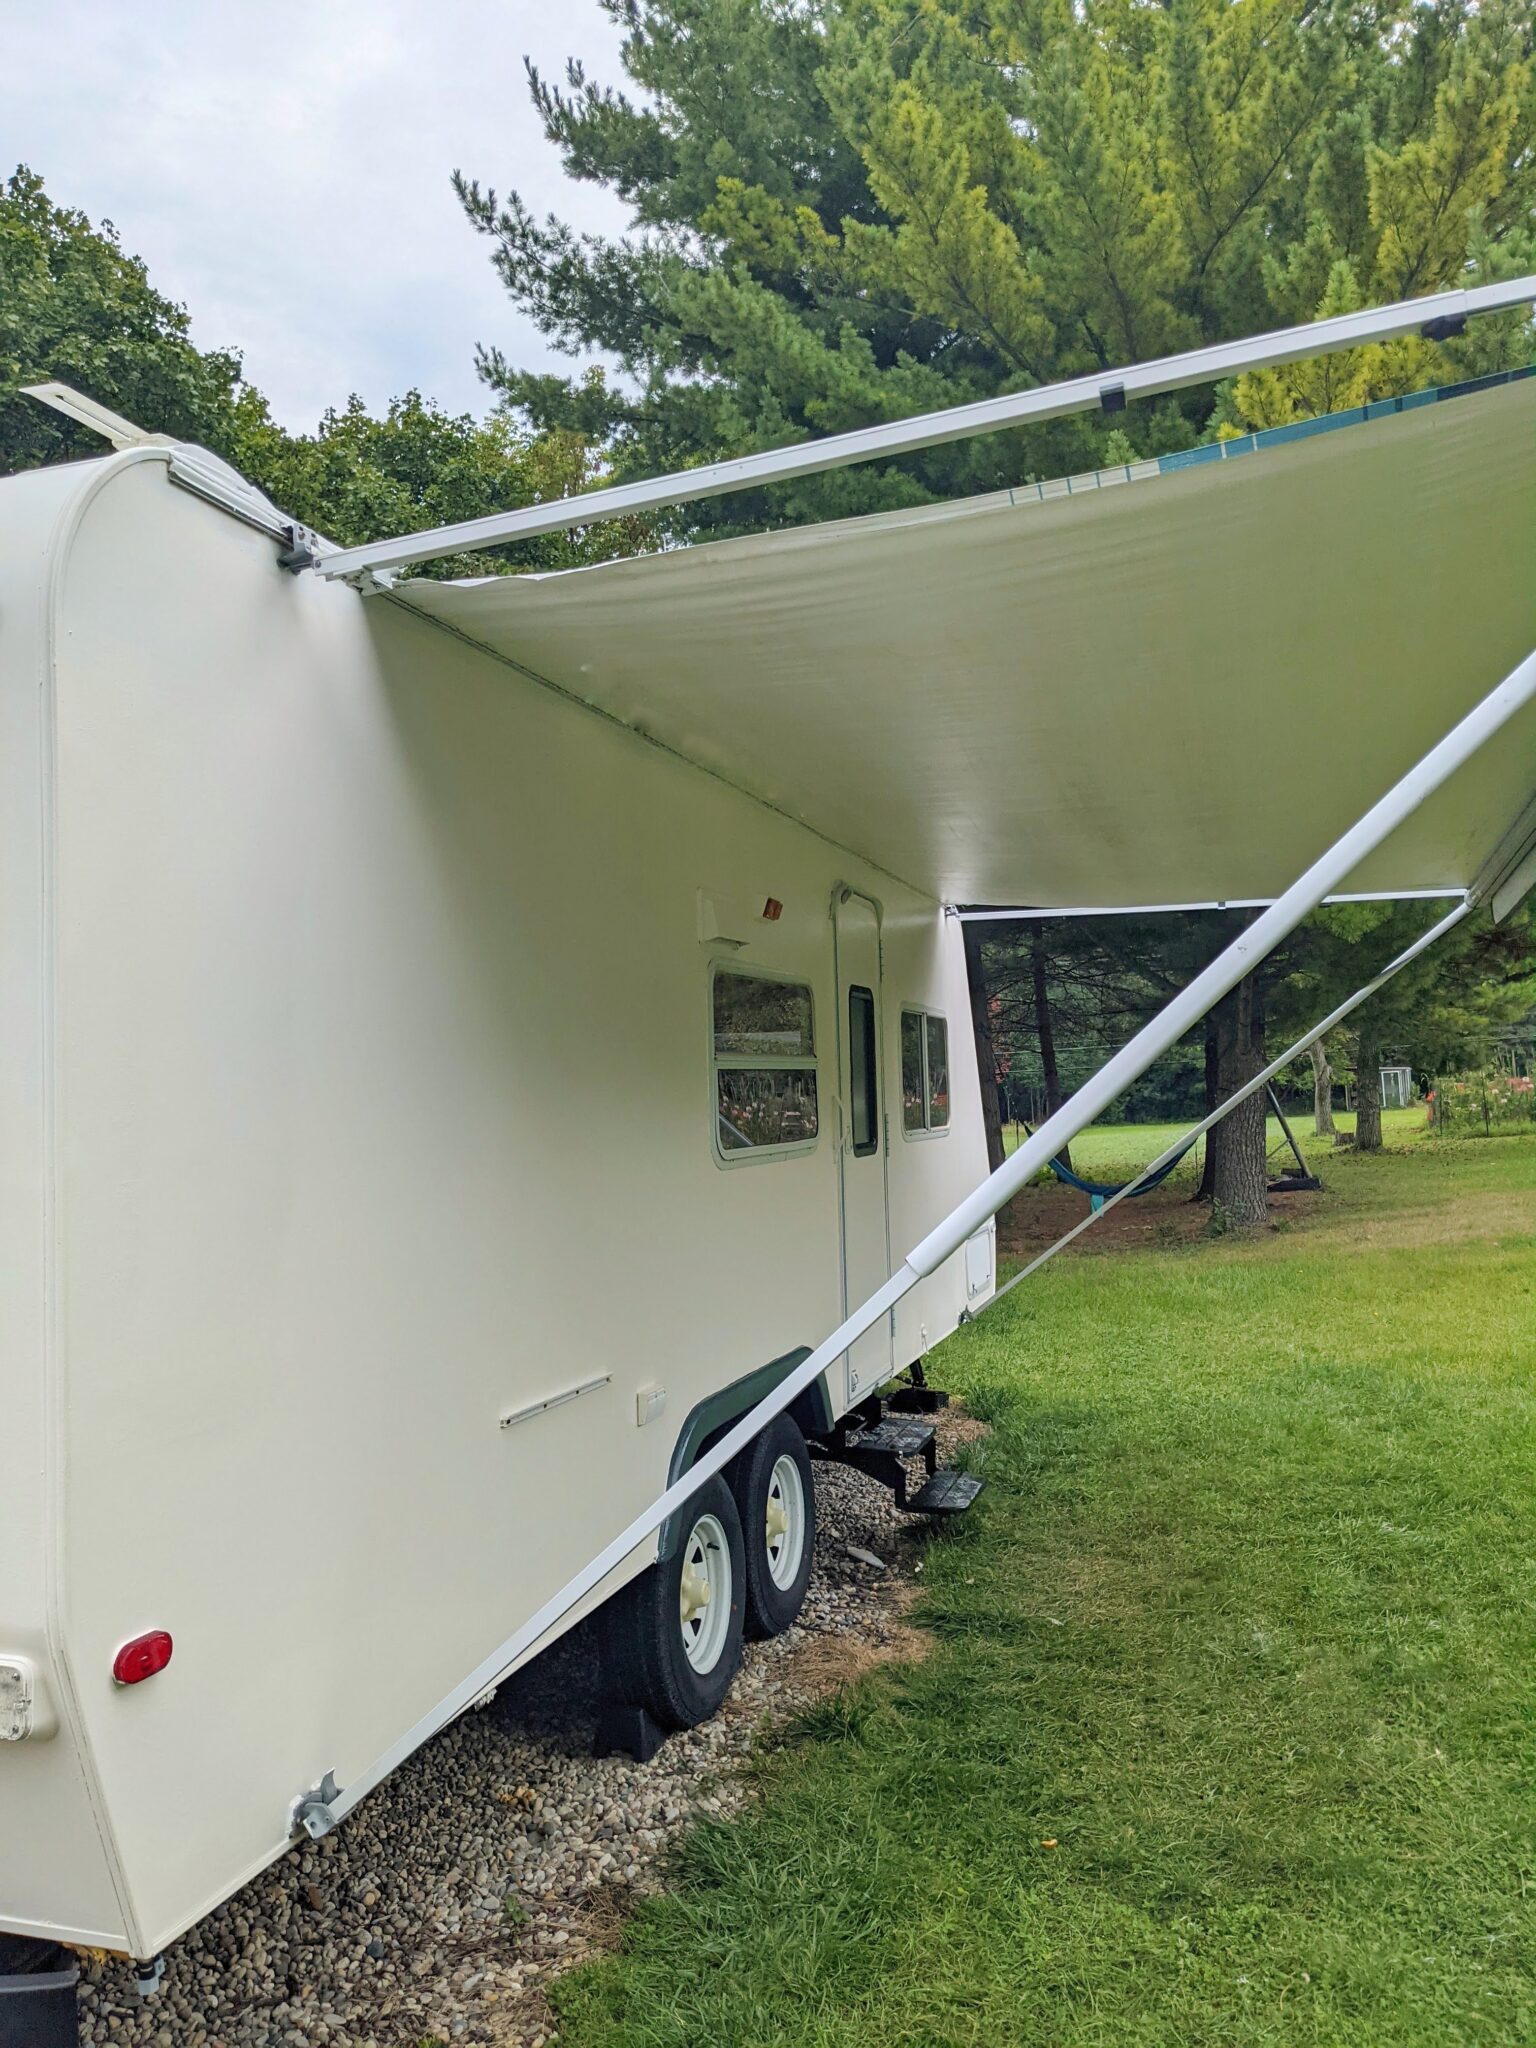 For Sale: Renovated 2003 Trail Cruiser Travel Trailer RV by R-Vision All Things with Purpose Sarah Lemp 8